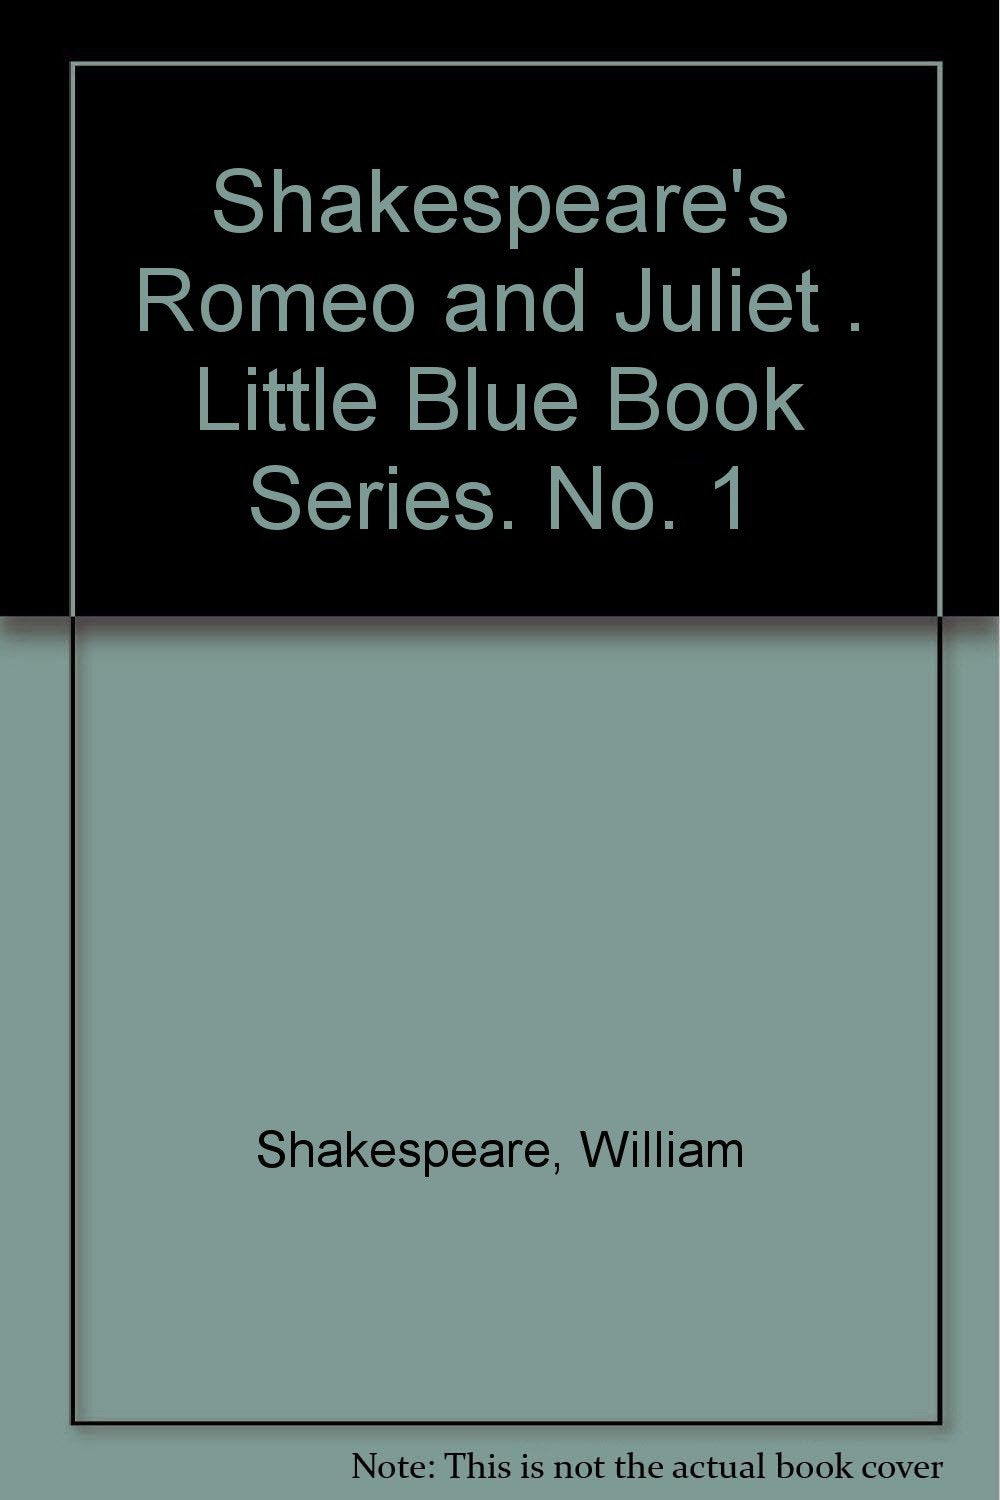 Shakespeare's Romeo and Juliet . Little Blue Book Series. No. 1 [Paperback] Shakespeare, William